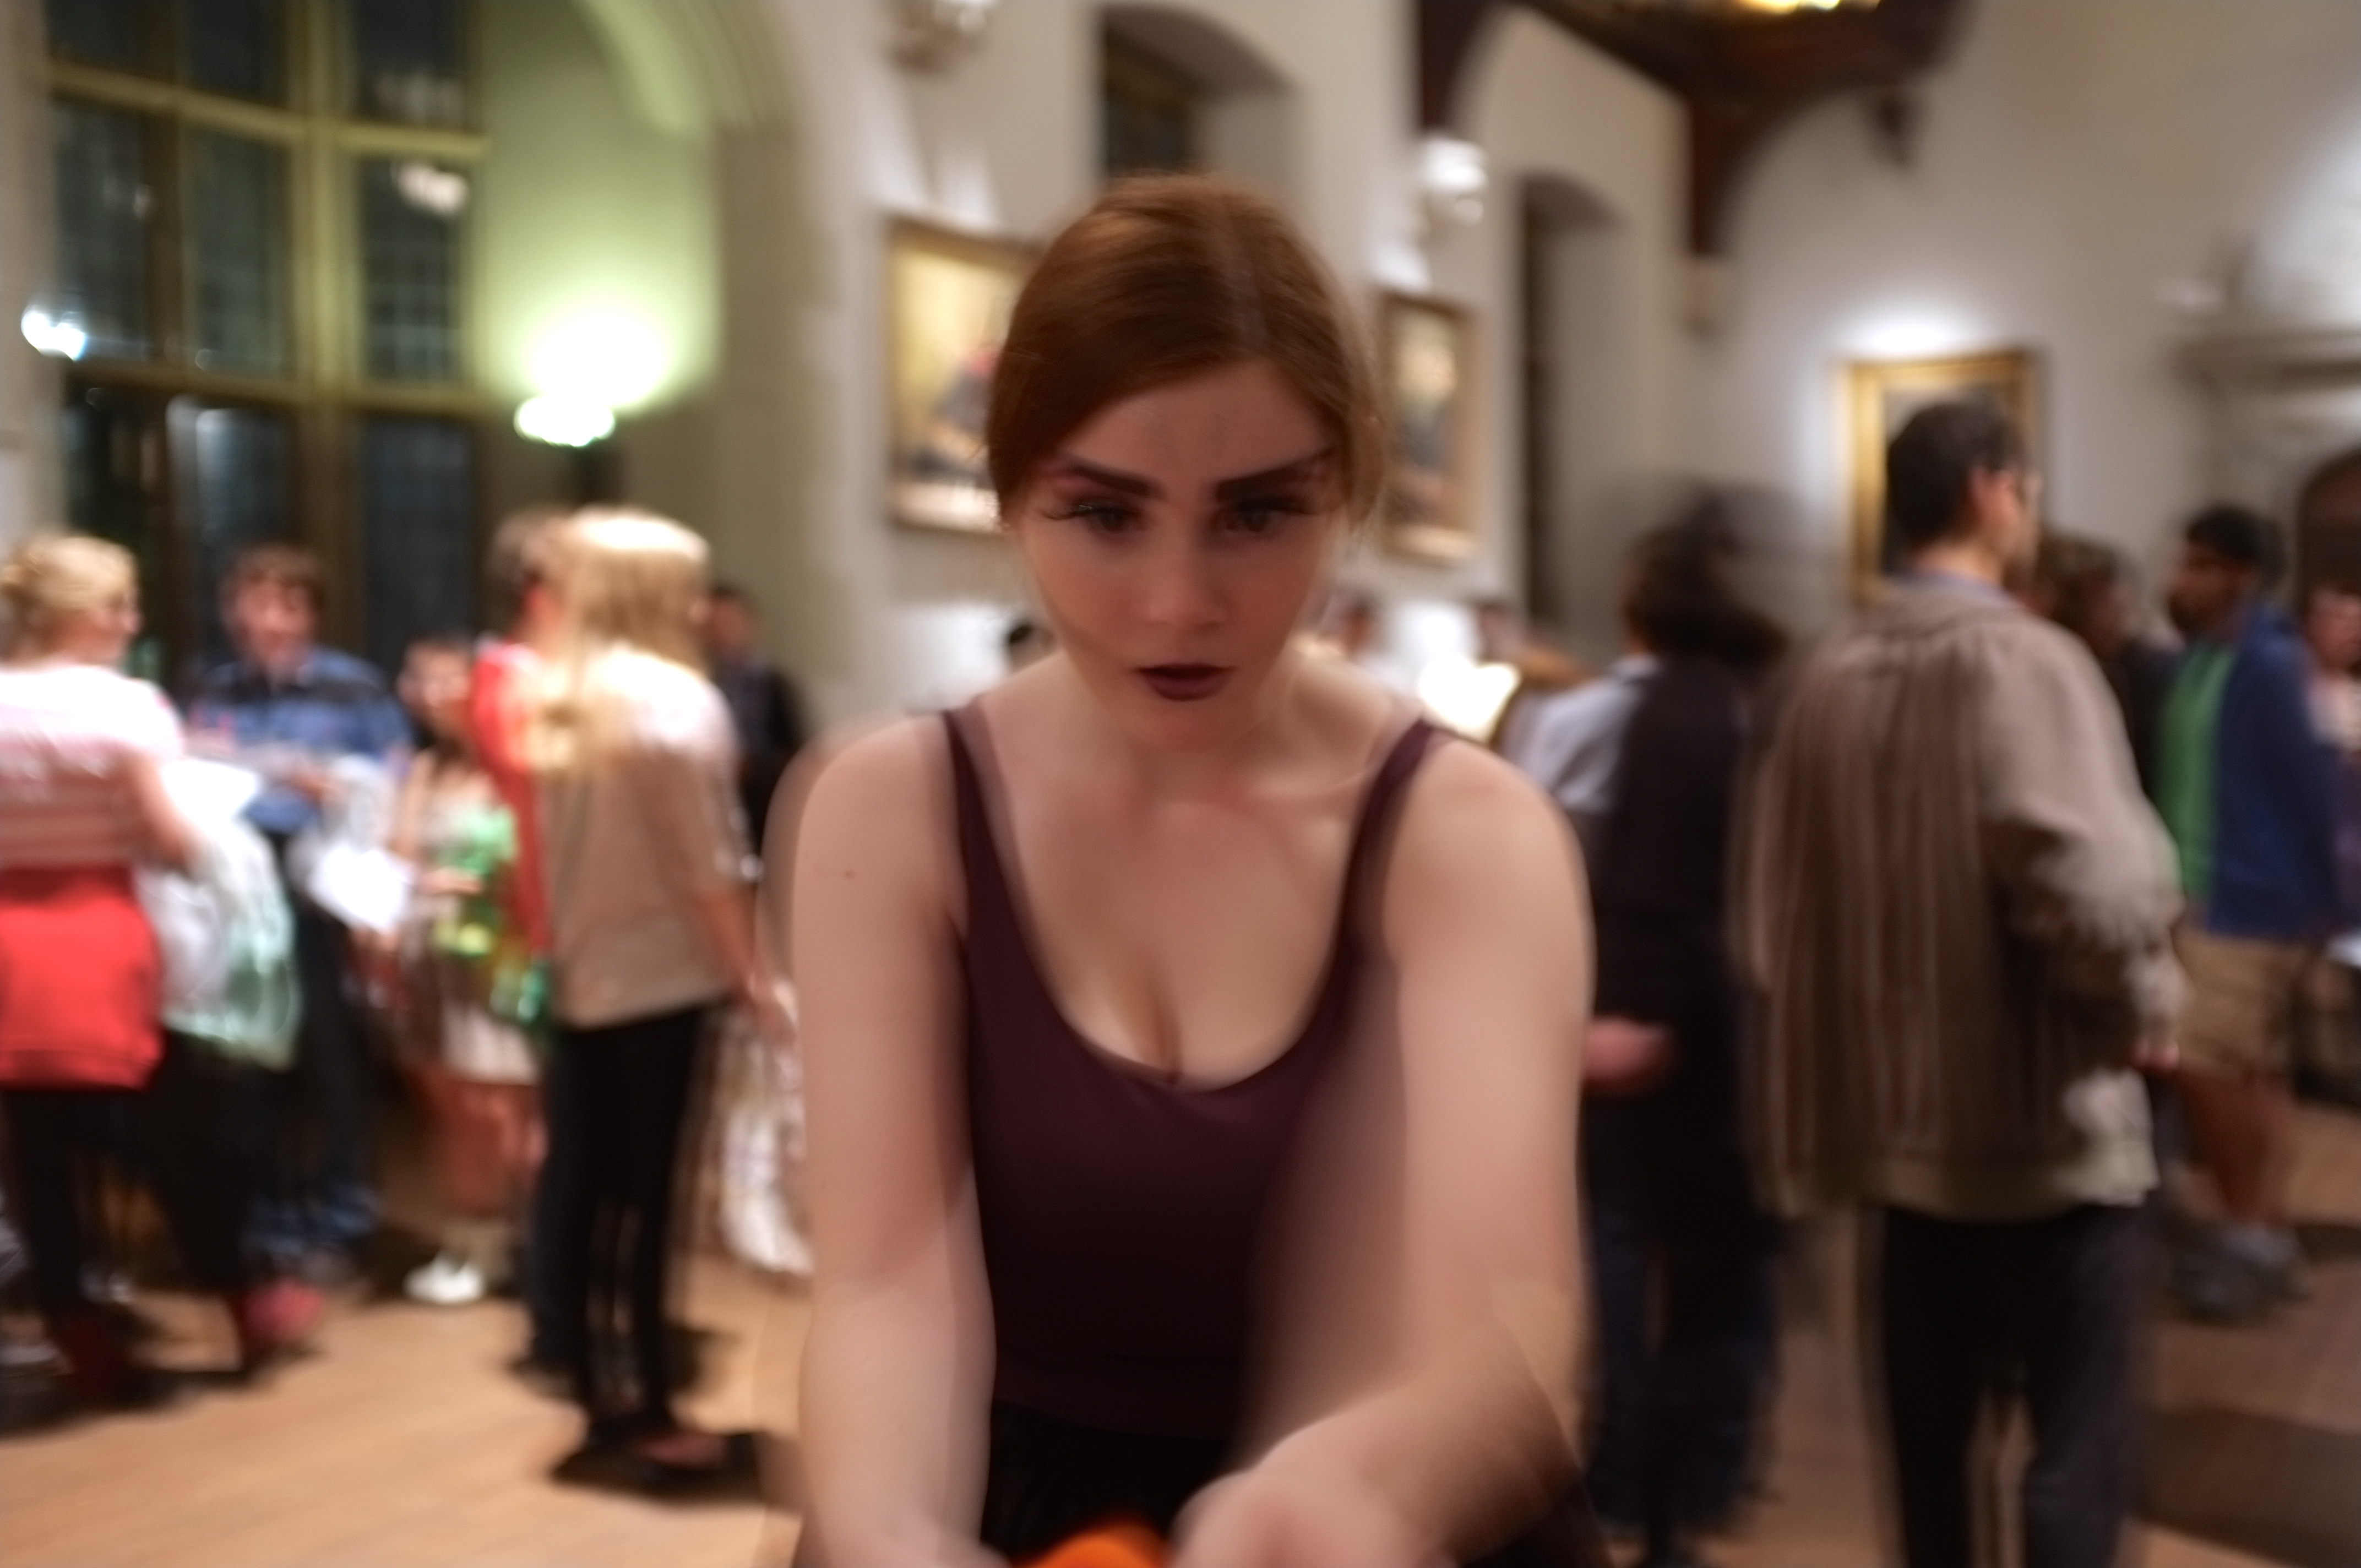 a girl dressed as a fairy looking confused into middle distance below the camera. Slightly blurry and out of focus because she is moving.